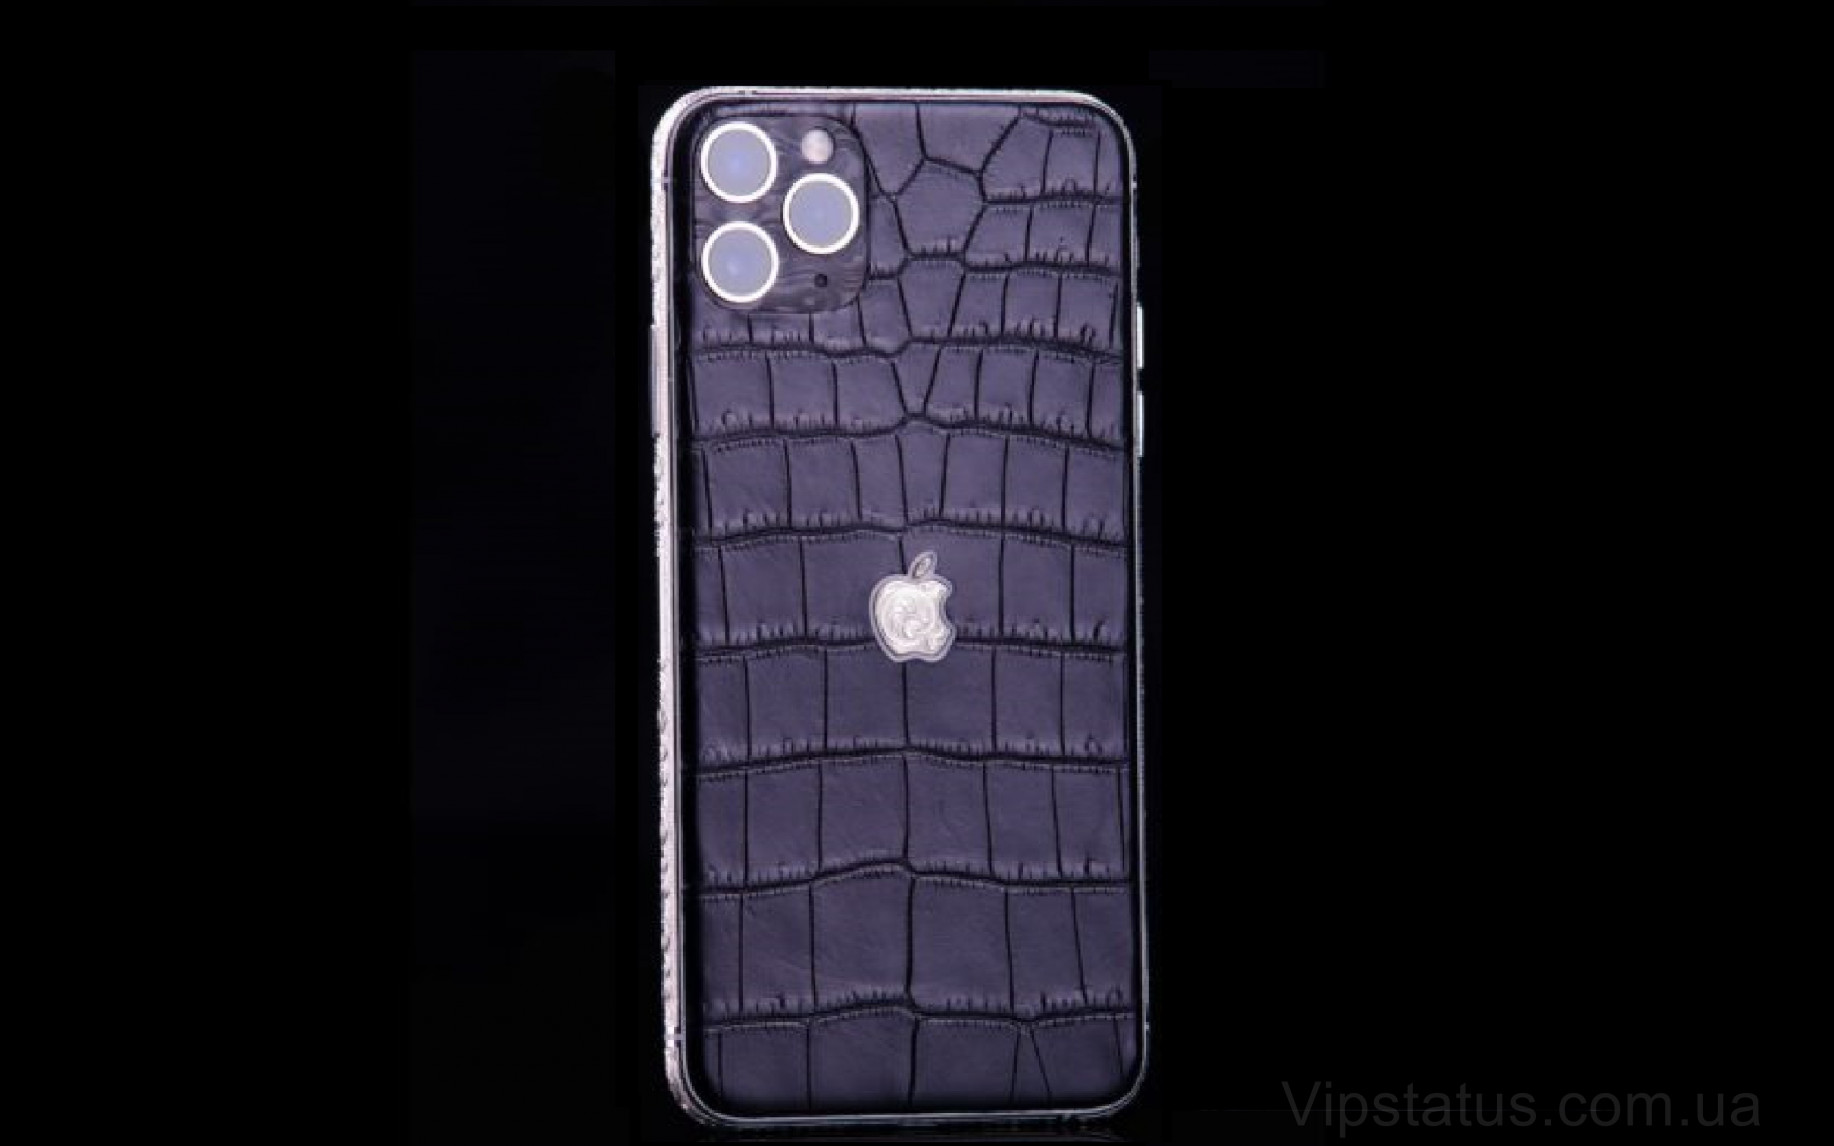 Elite Platinum Carbon Magic IPHONE XS 512 GB Platinum Carbon Magic IPHONE XS 512 GB image 1